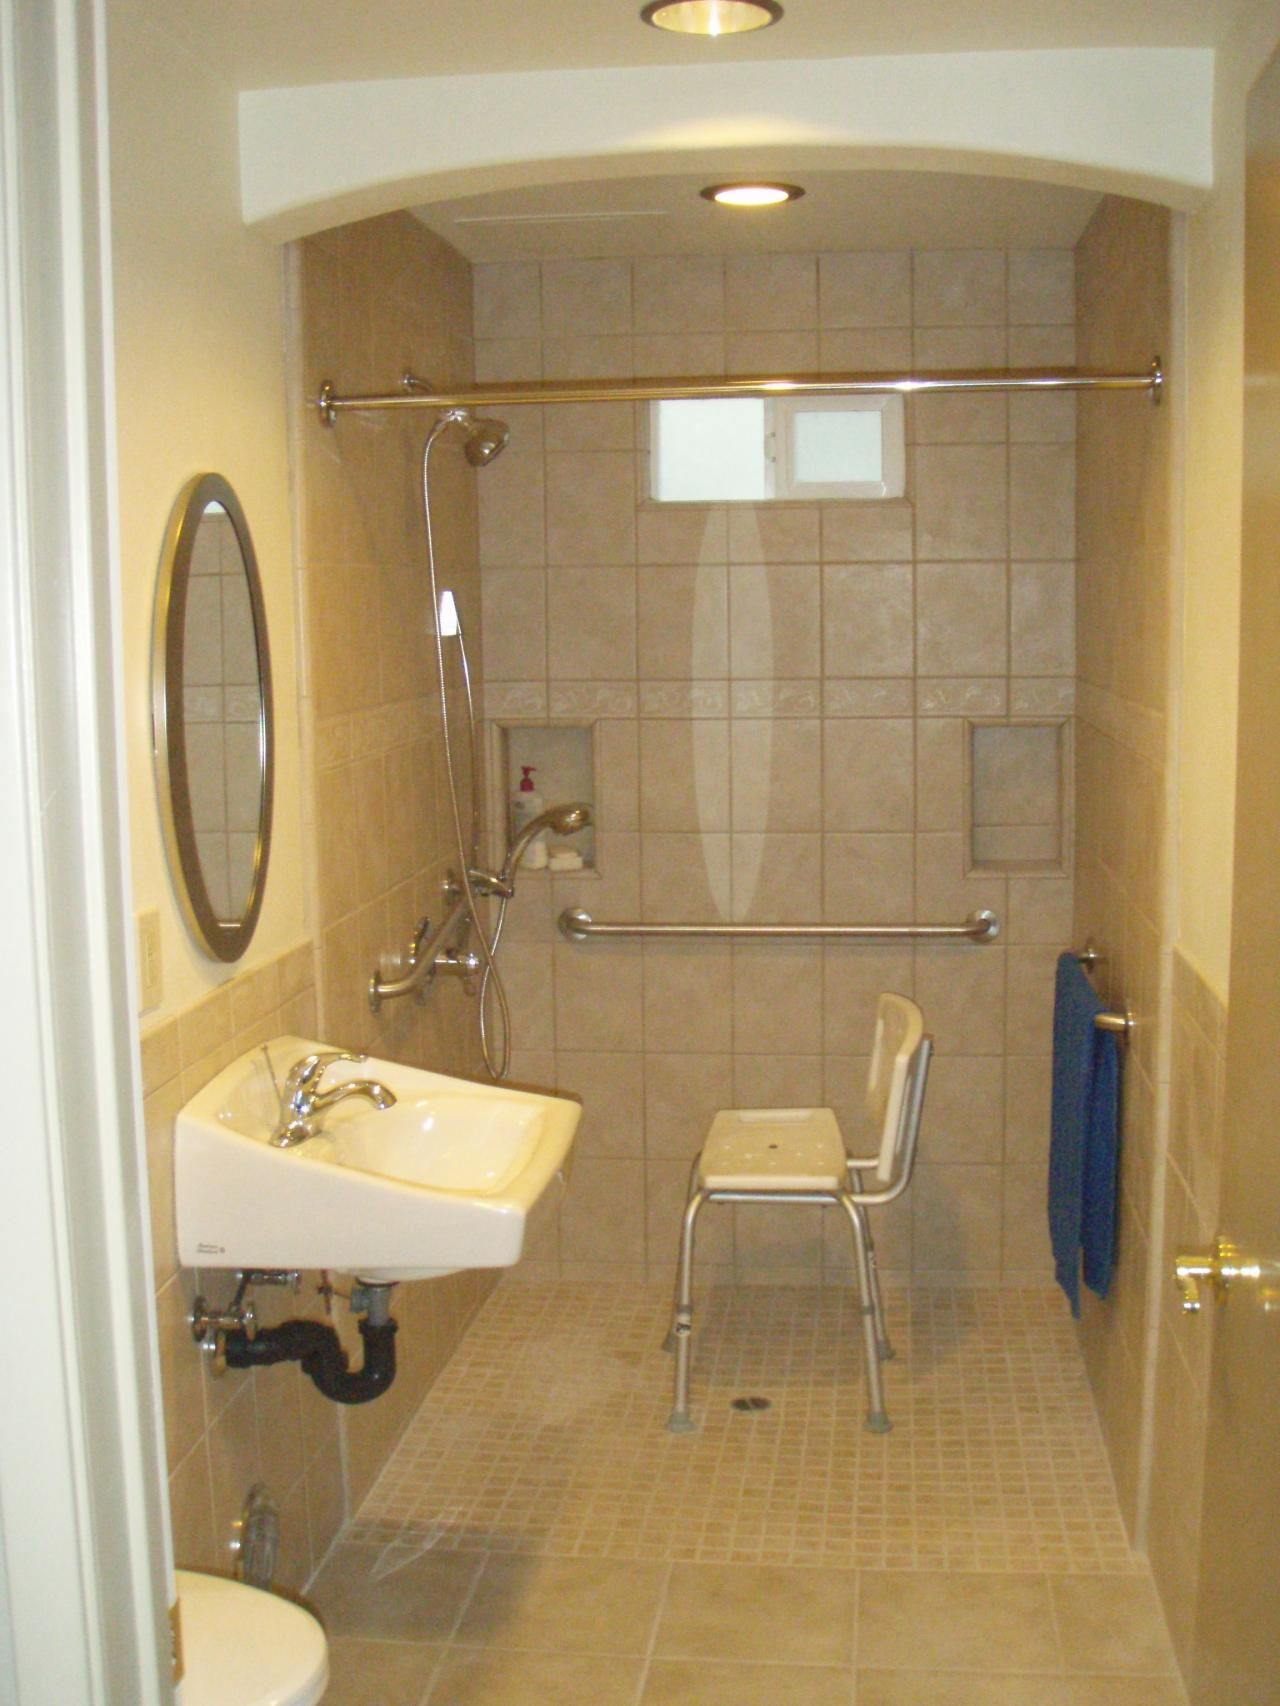 Ordinaire Bathroom Remodels For Handicapped | HANDICAPPED BATHROOM, Ms. Hayashi,  TORRANCE 11 09